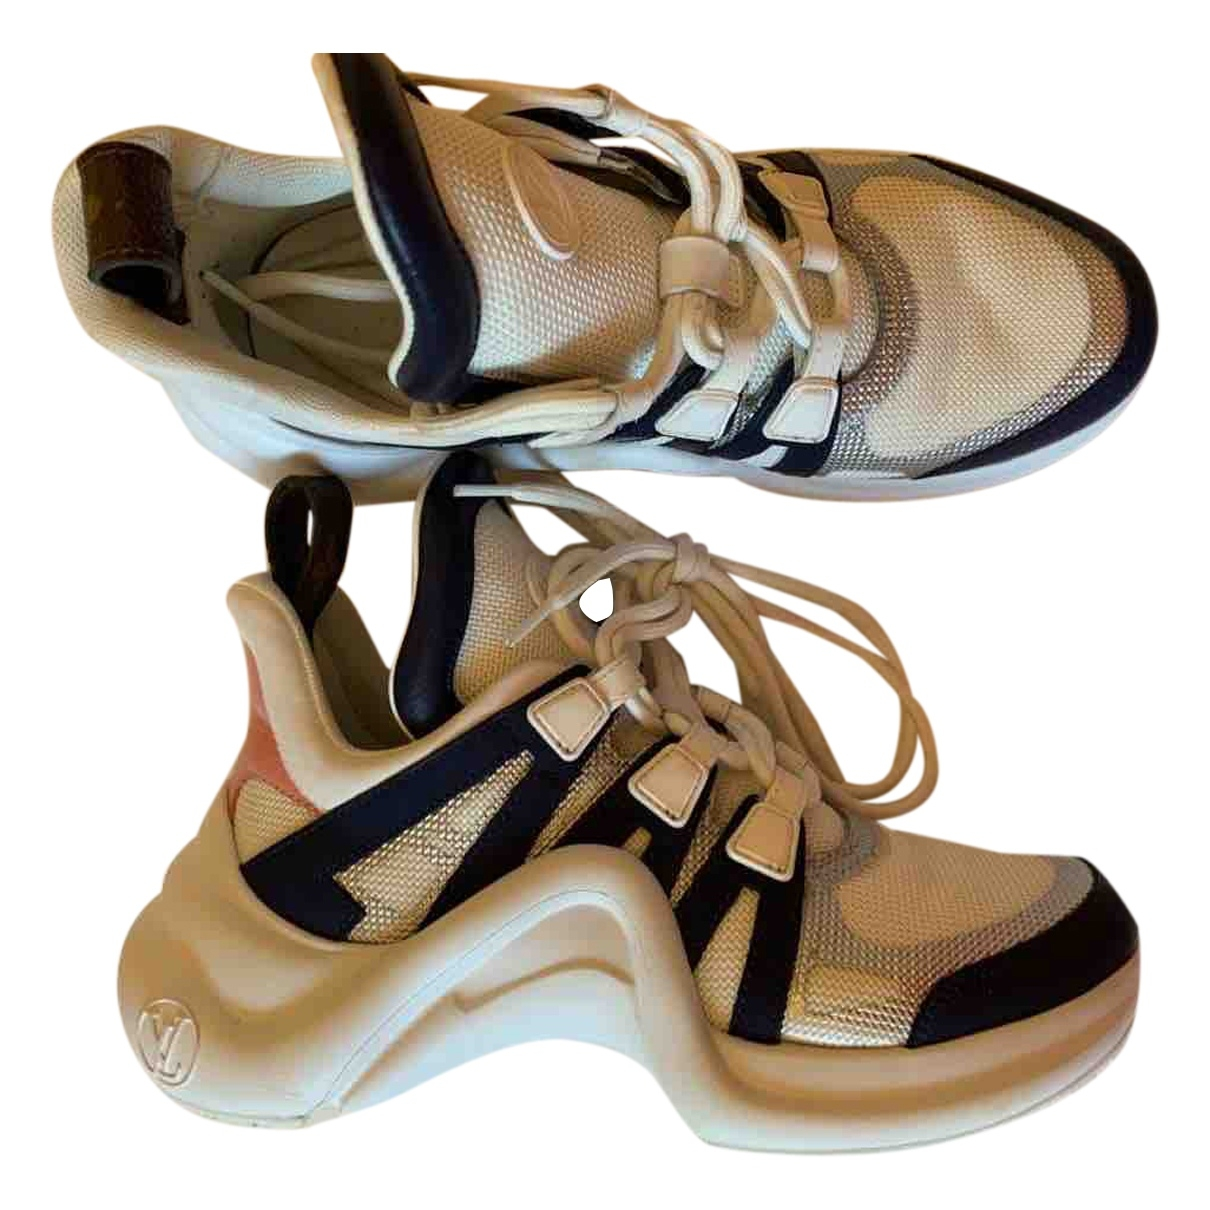 Louis Vuitton Archlight Sneakers in  Weiss Leder